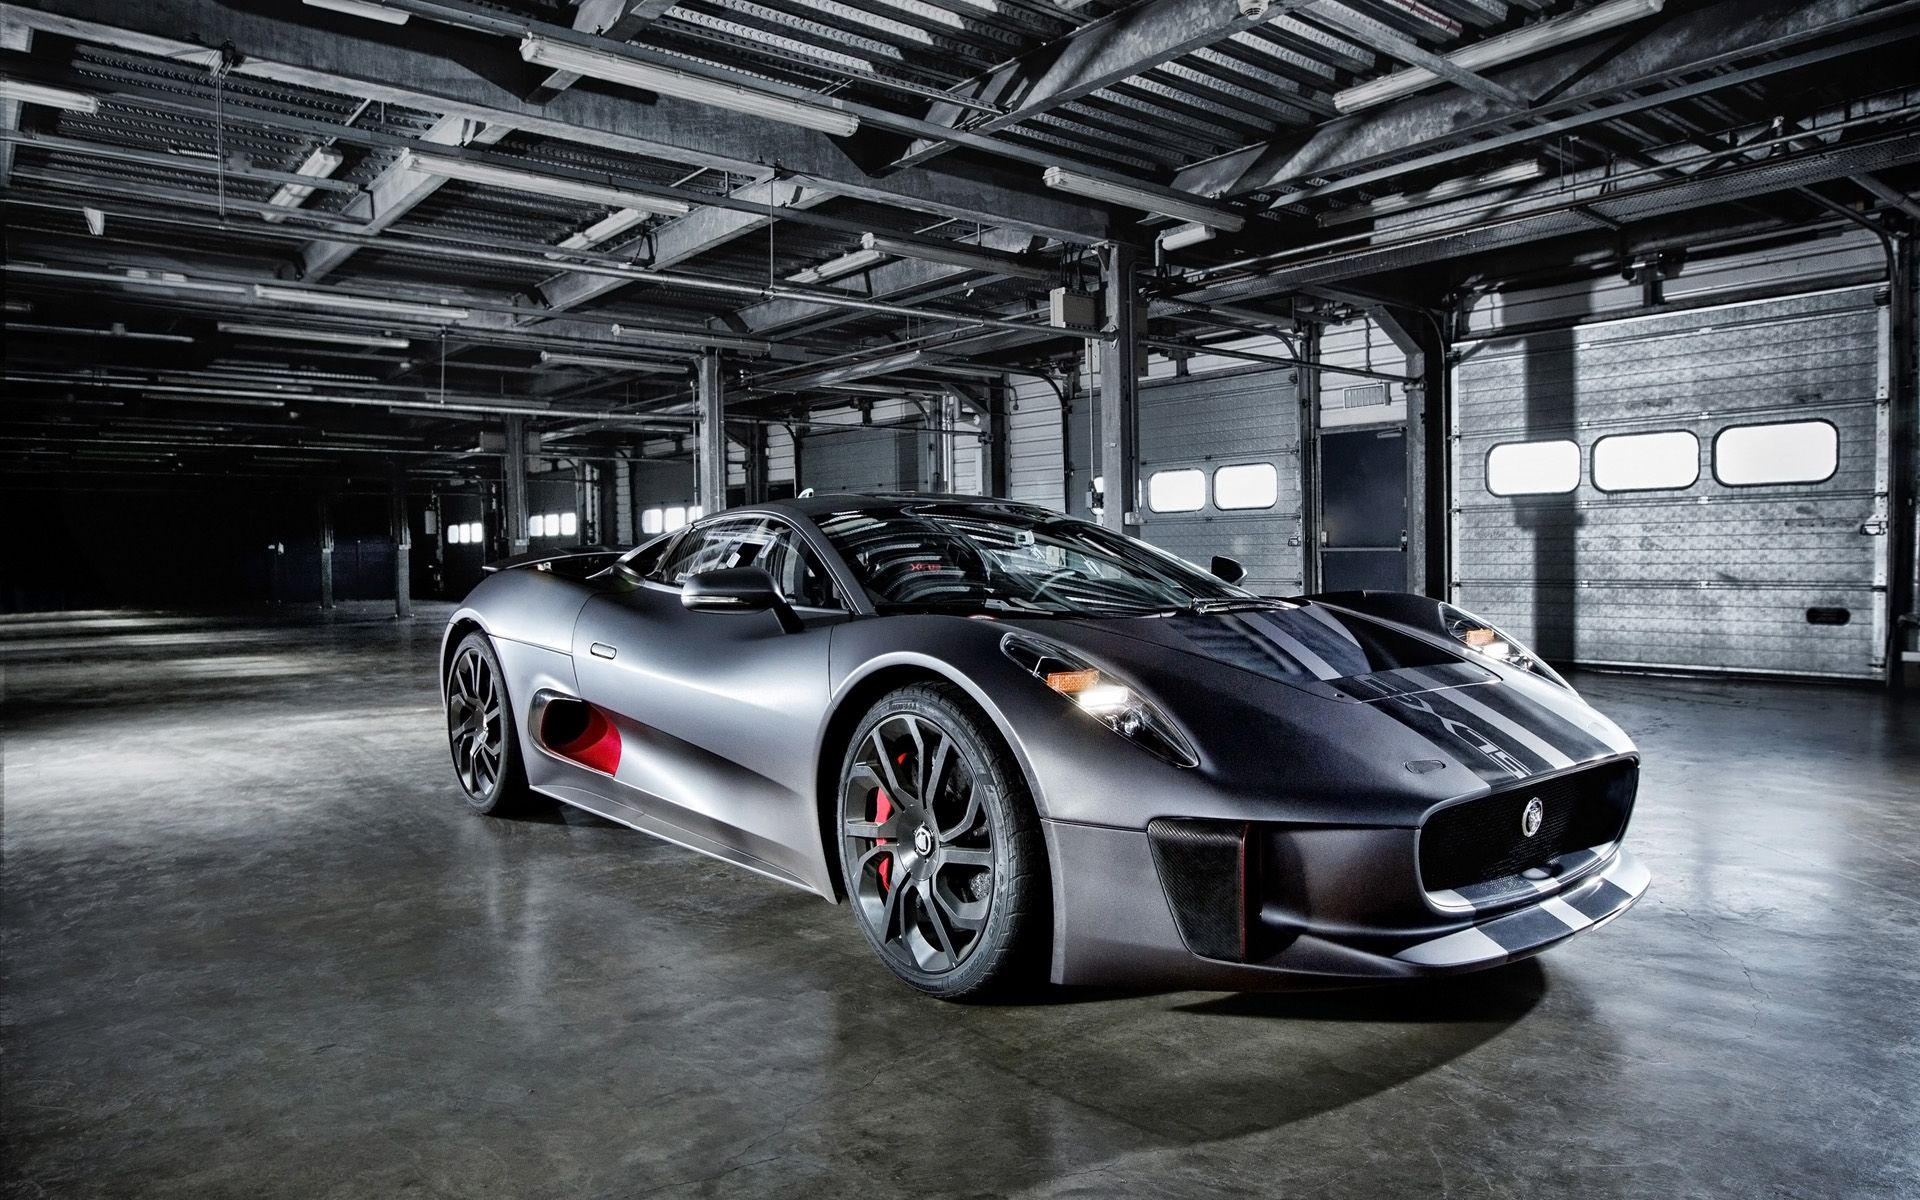 Jaguar C-X75 Hybrid Supercar Photo Gallery : Luxury Auto Direct Magazine